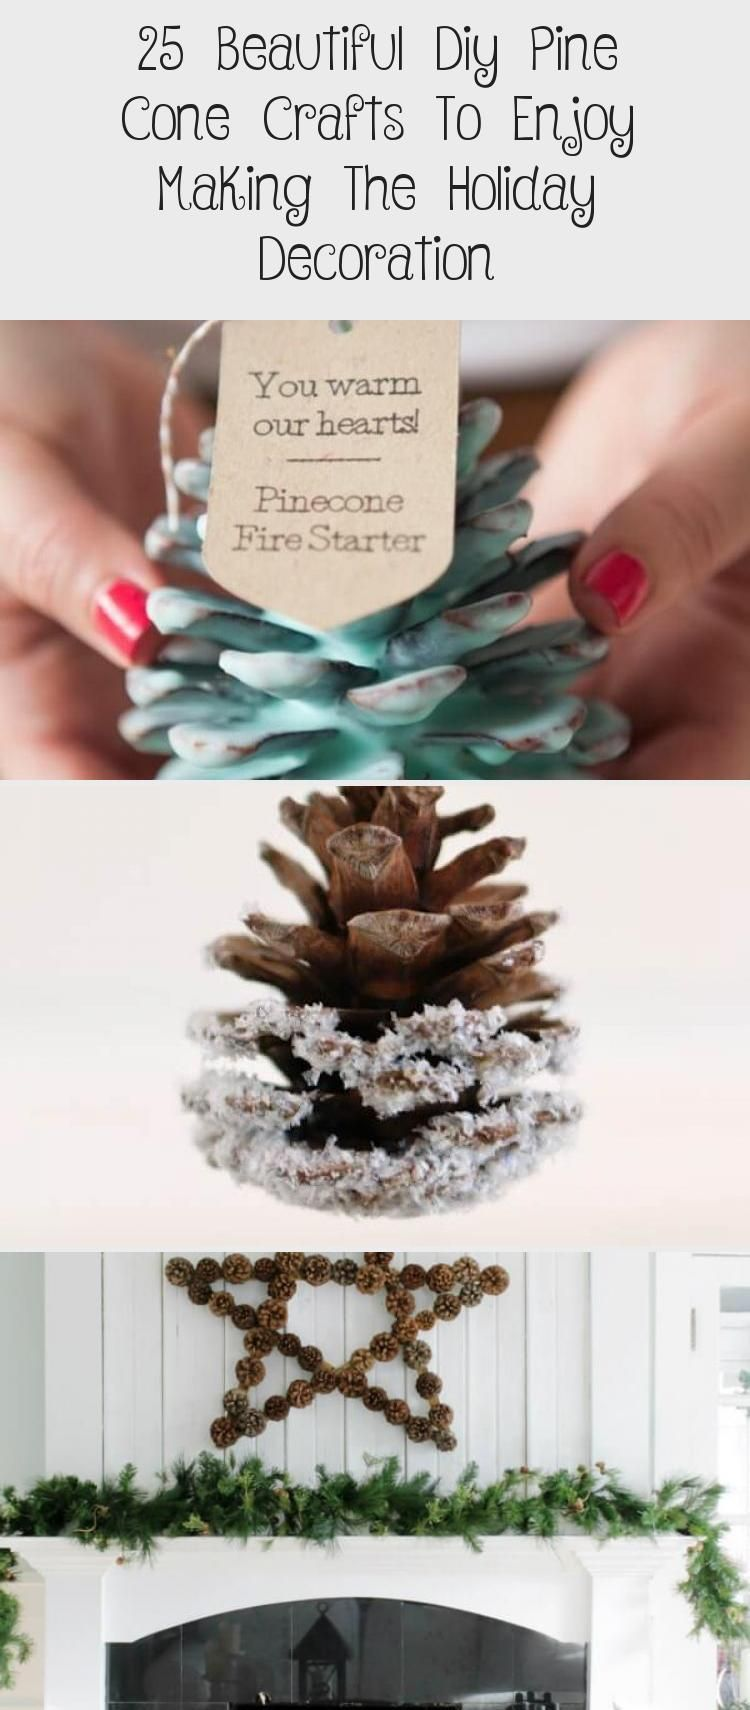 25 Beautiful Diy Pine Cone Crafts To Enjoy Making The Holiday Decoration Pine Cone Crafts Cones Crafts Crafts